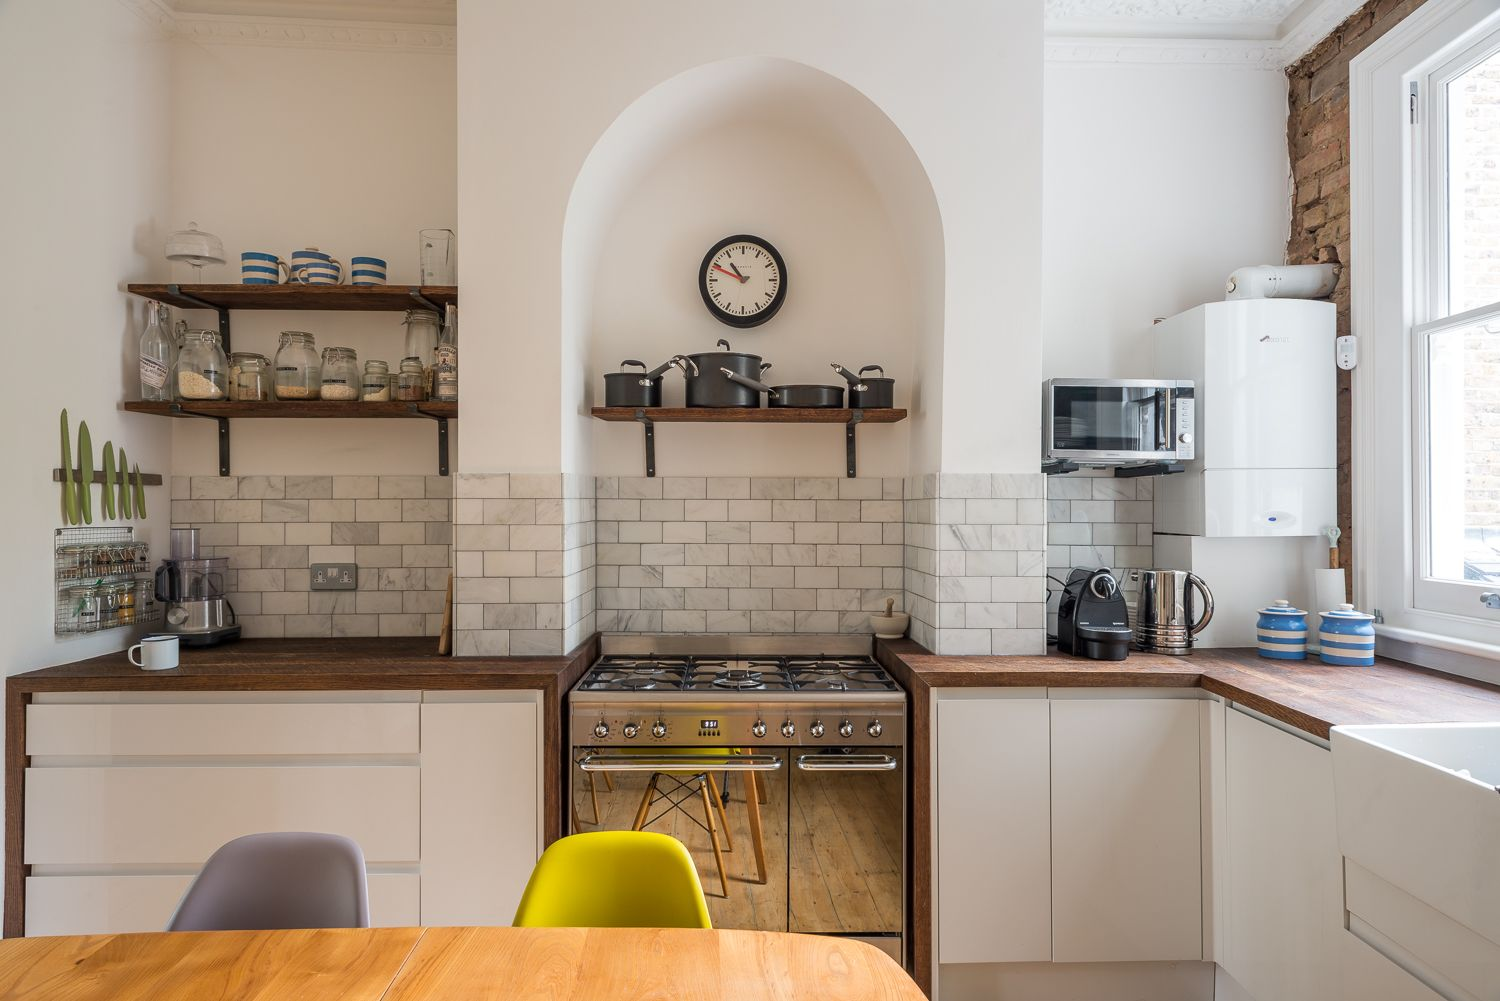 Marble subway tiles fired earth reclaimed oak worktops shelves marble subway tiles fired earth reclaimed oak worktops shelves brackets from dailygadgetfo Images